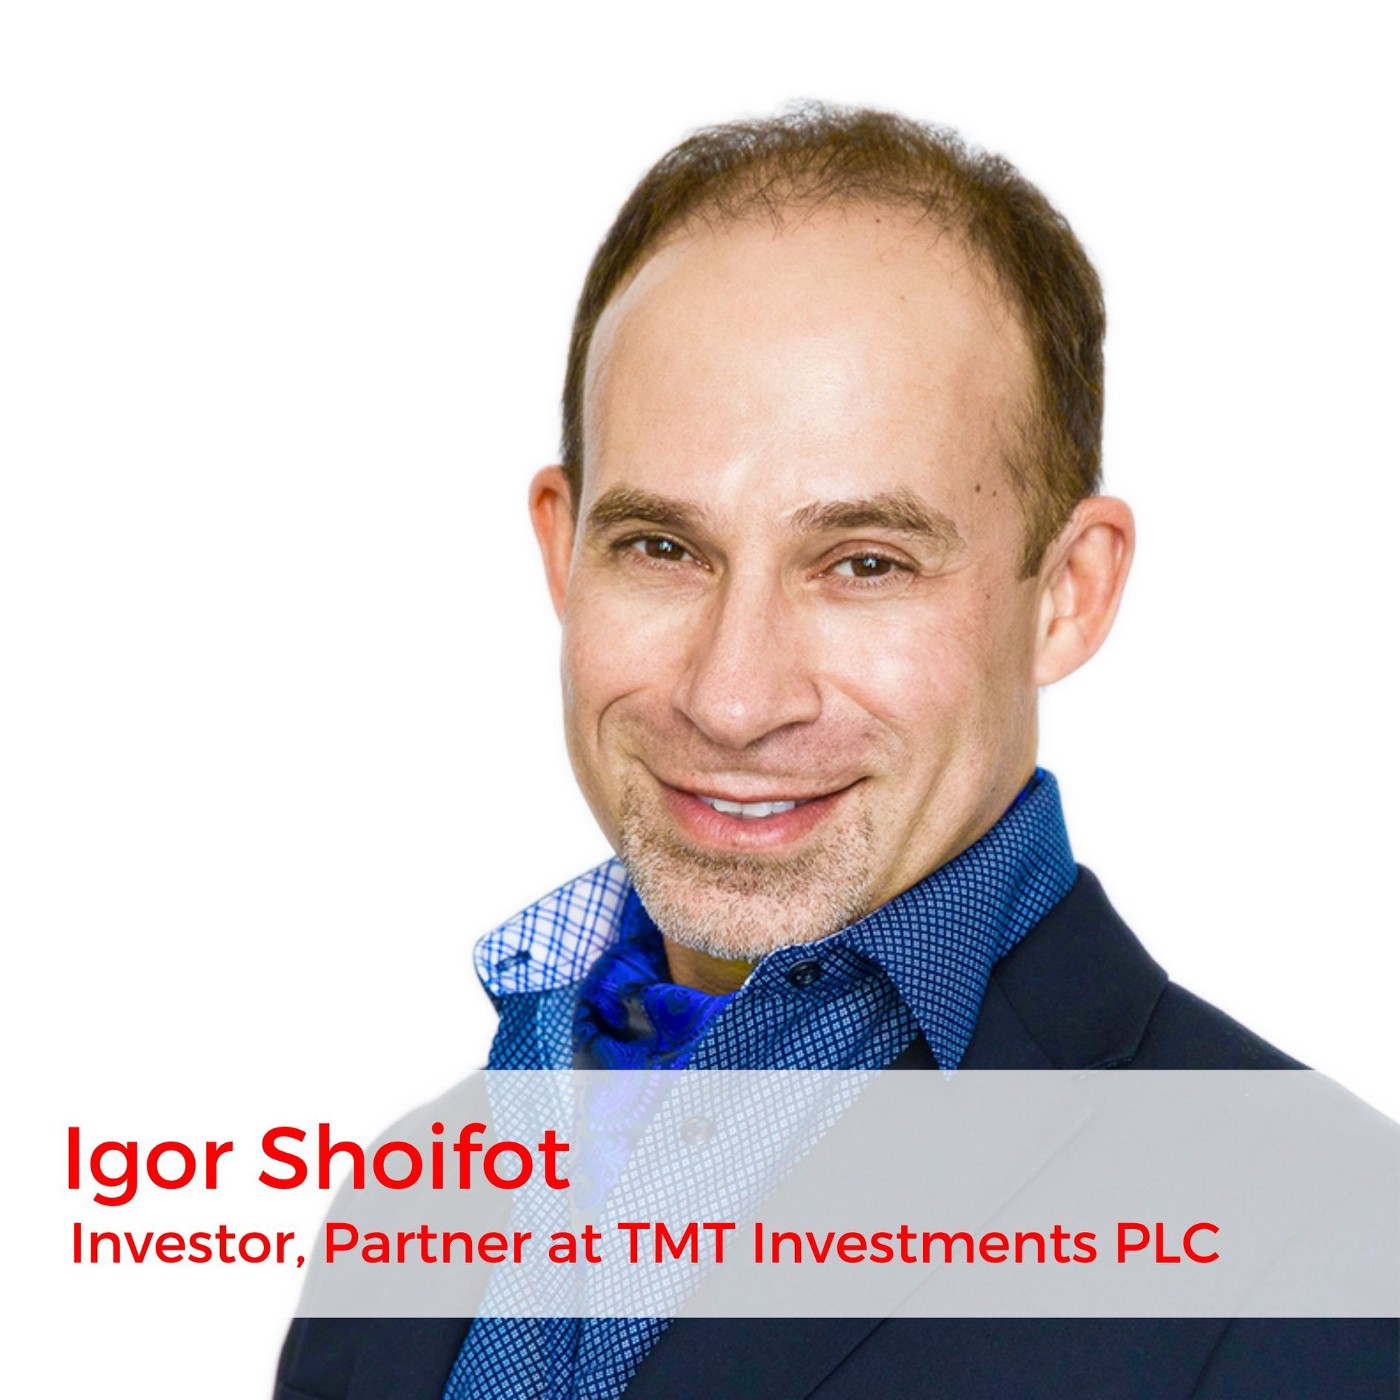 Igor Shoifot, Investor and Partner at TMT Investments, gave a keynote at the Young Business Club of New York. YBC NYC.